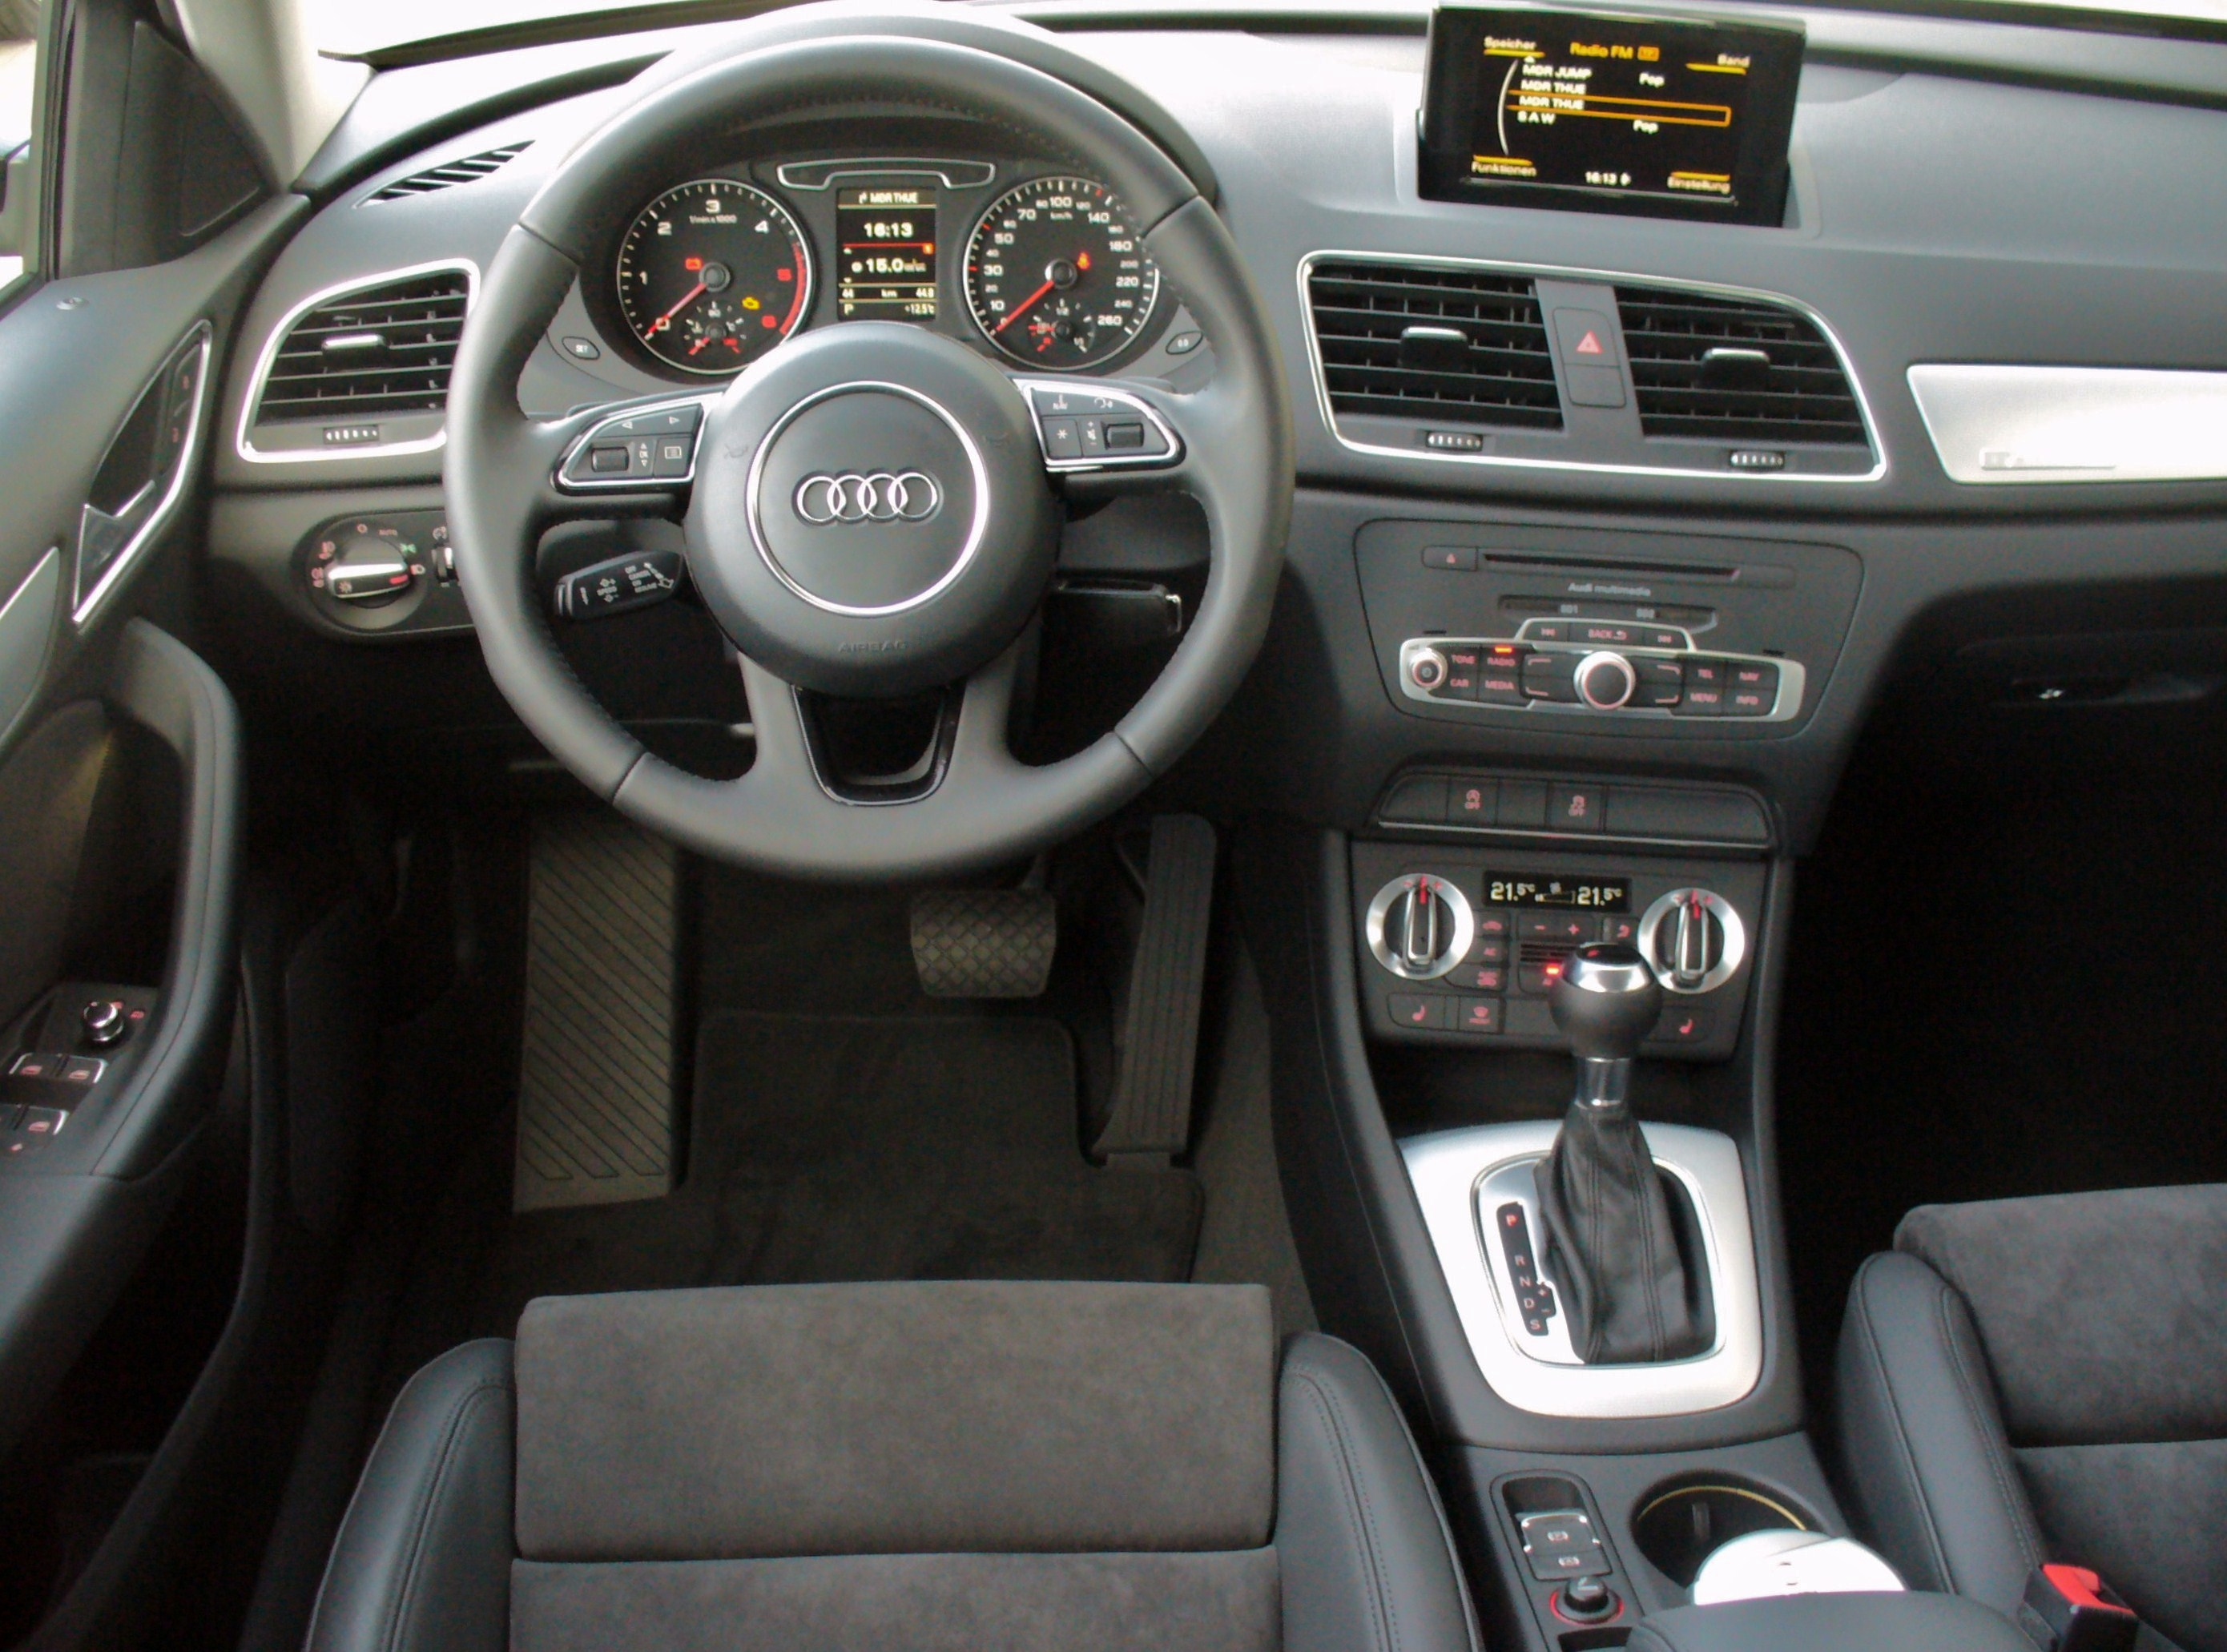 plik audi q3 2 0 tdi quattro s tronic phantomschwarz interieur jpg wikipedia wolna encyklopedia. Black Bedroom Furniture Sets. Home Design Ideas